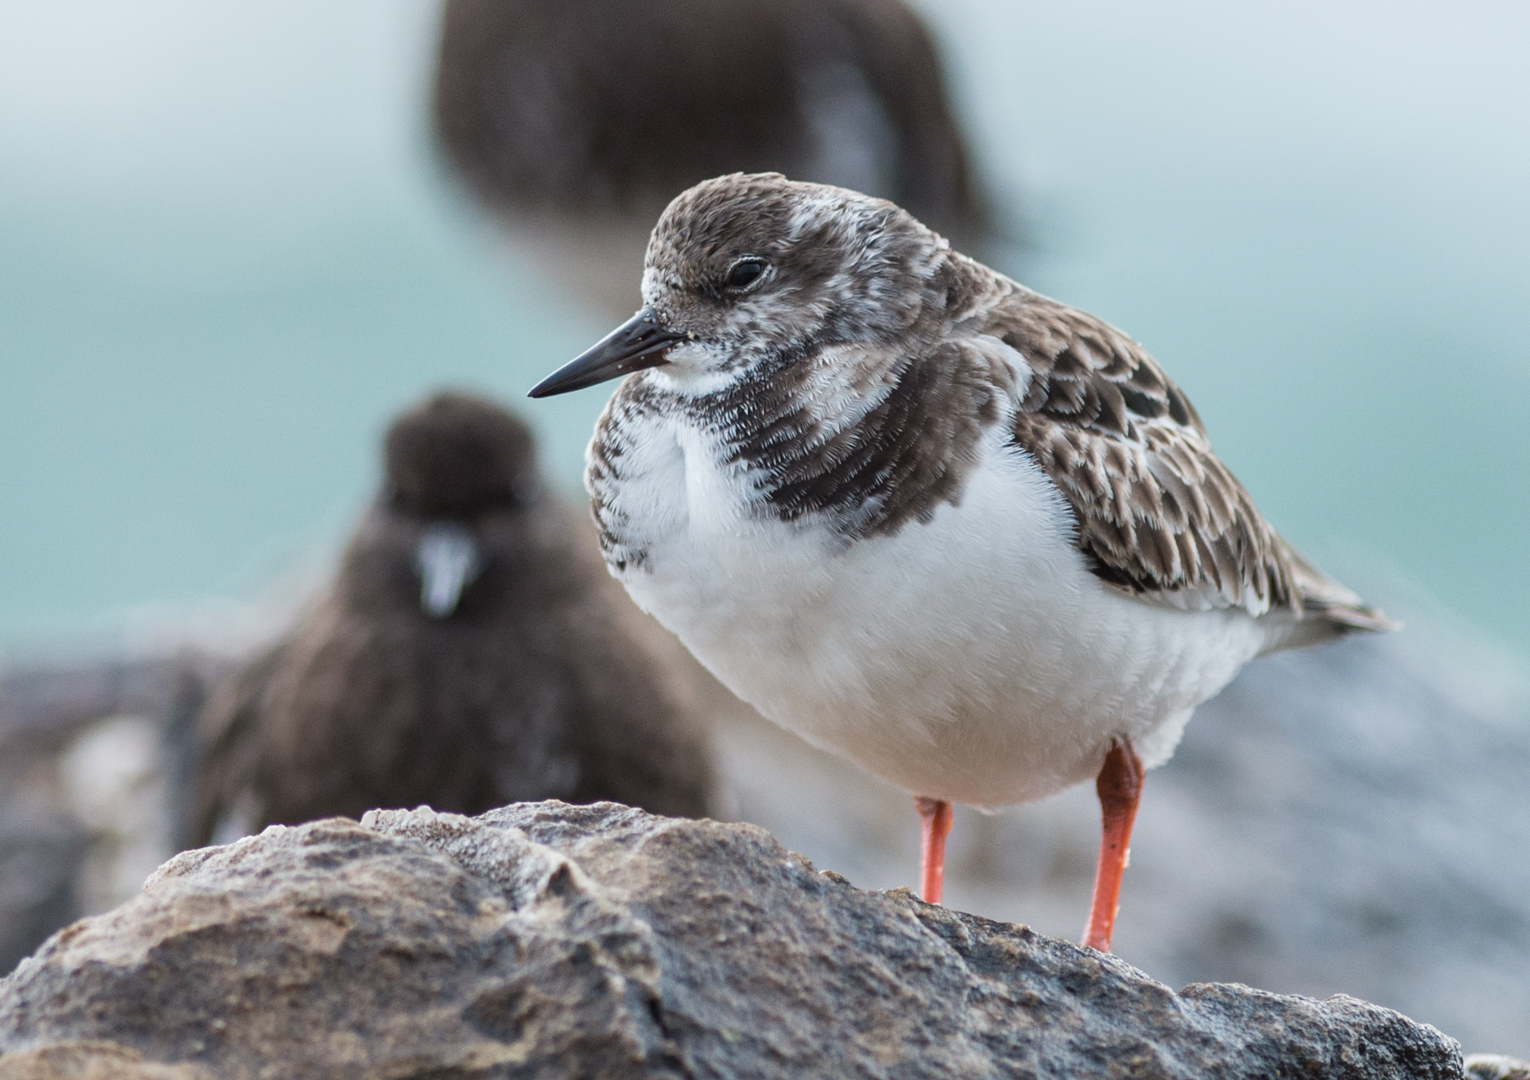 Featured Photo 23: Ruddy Turnstone (Arenaria interpres)  EQ: D800 f/2.8 300mm  Taken: 3-2-15 8:03  Setting: 300mm, 1/640s, f/3.2, ISO640  Condition: Foggy